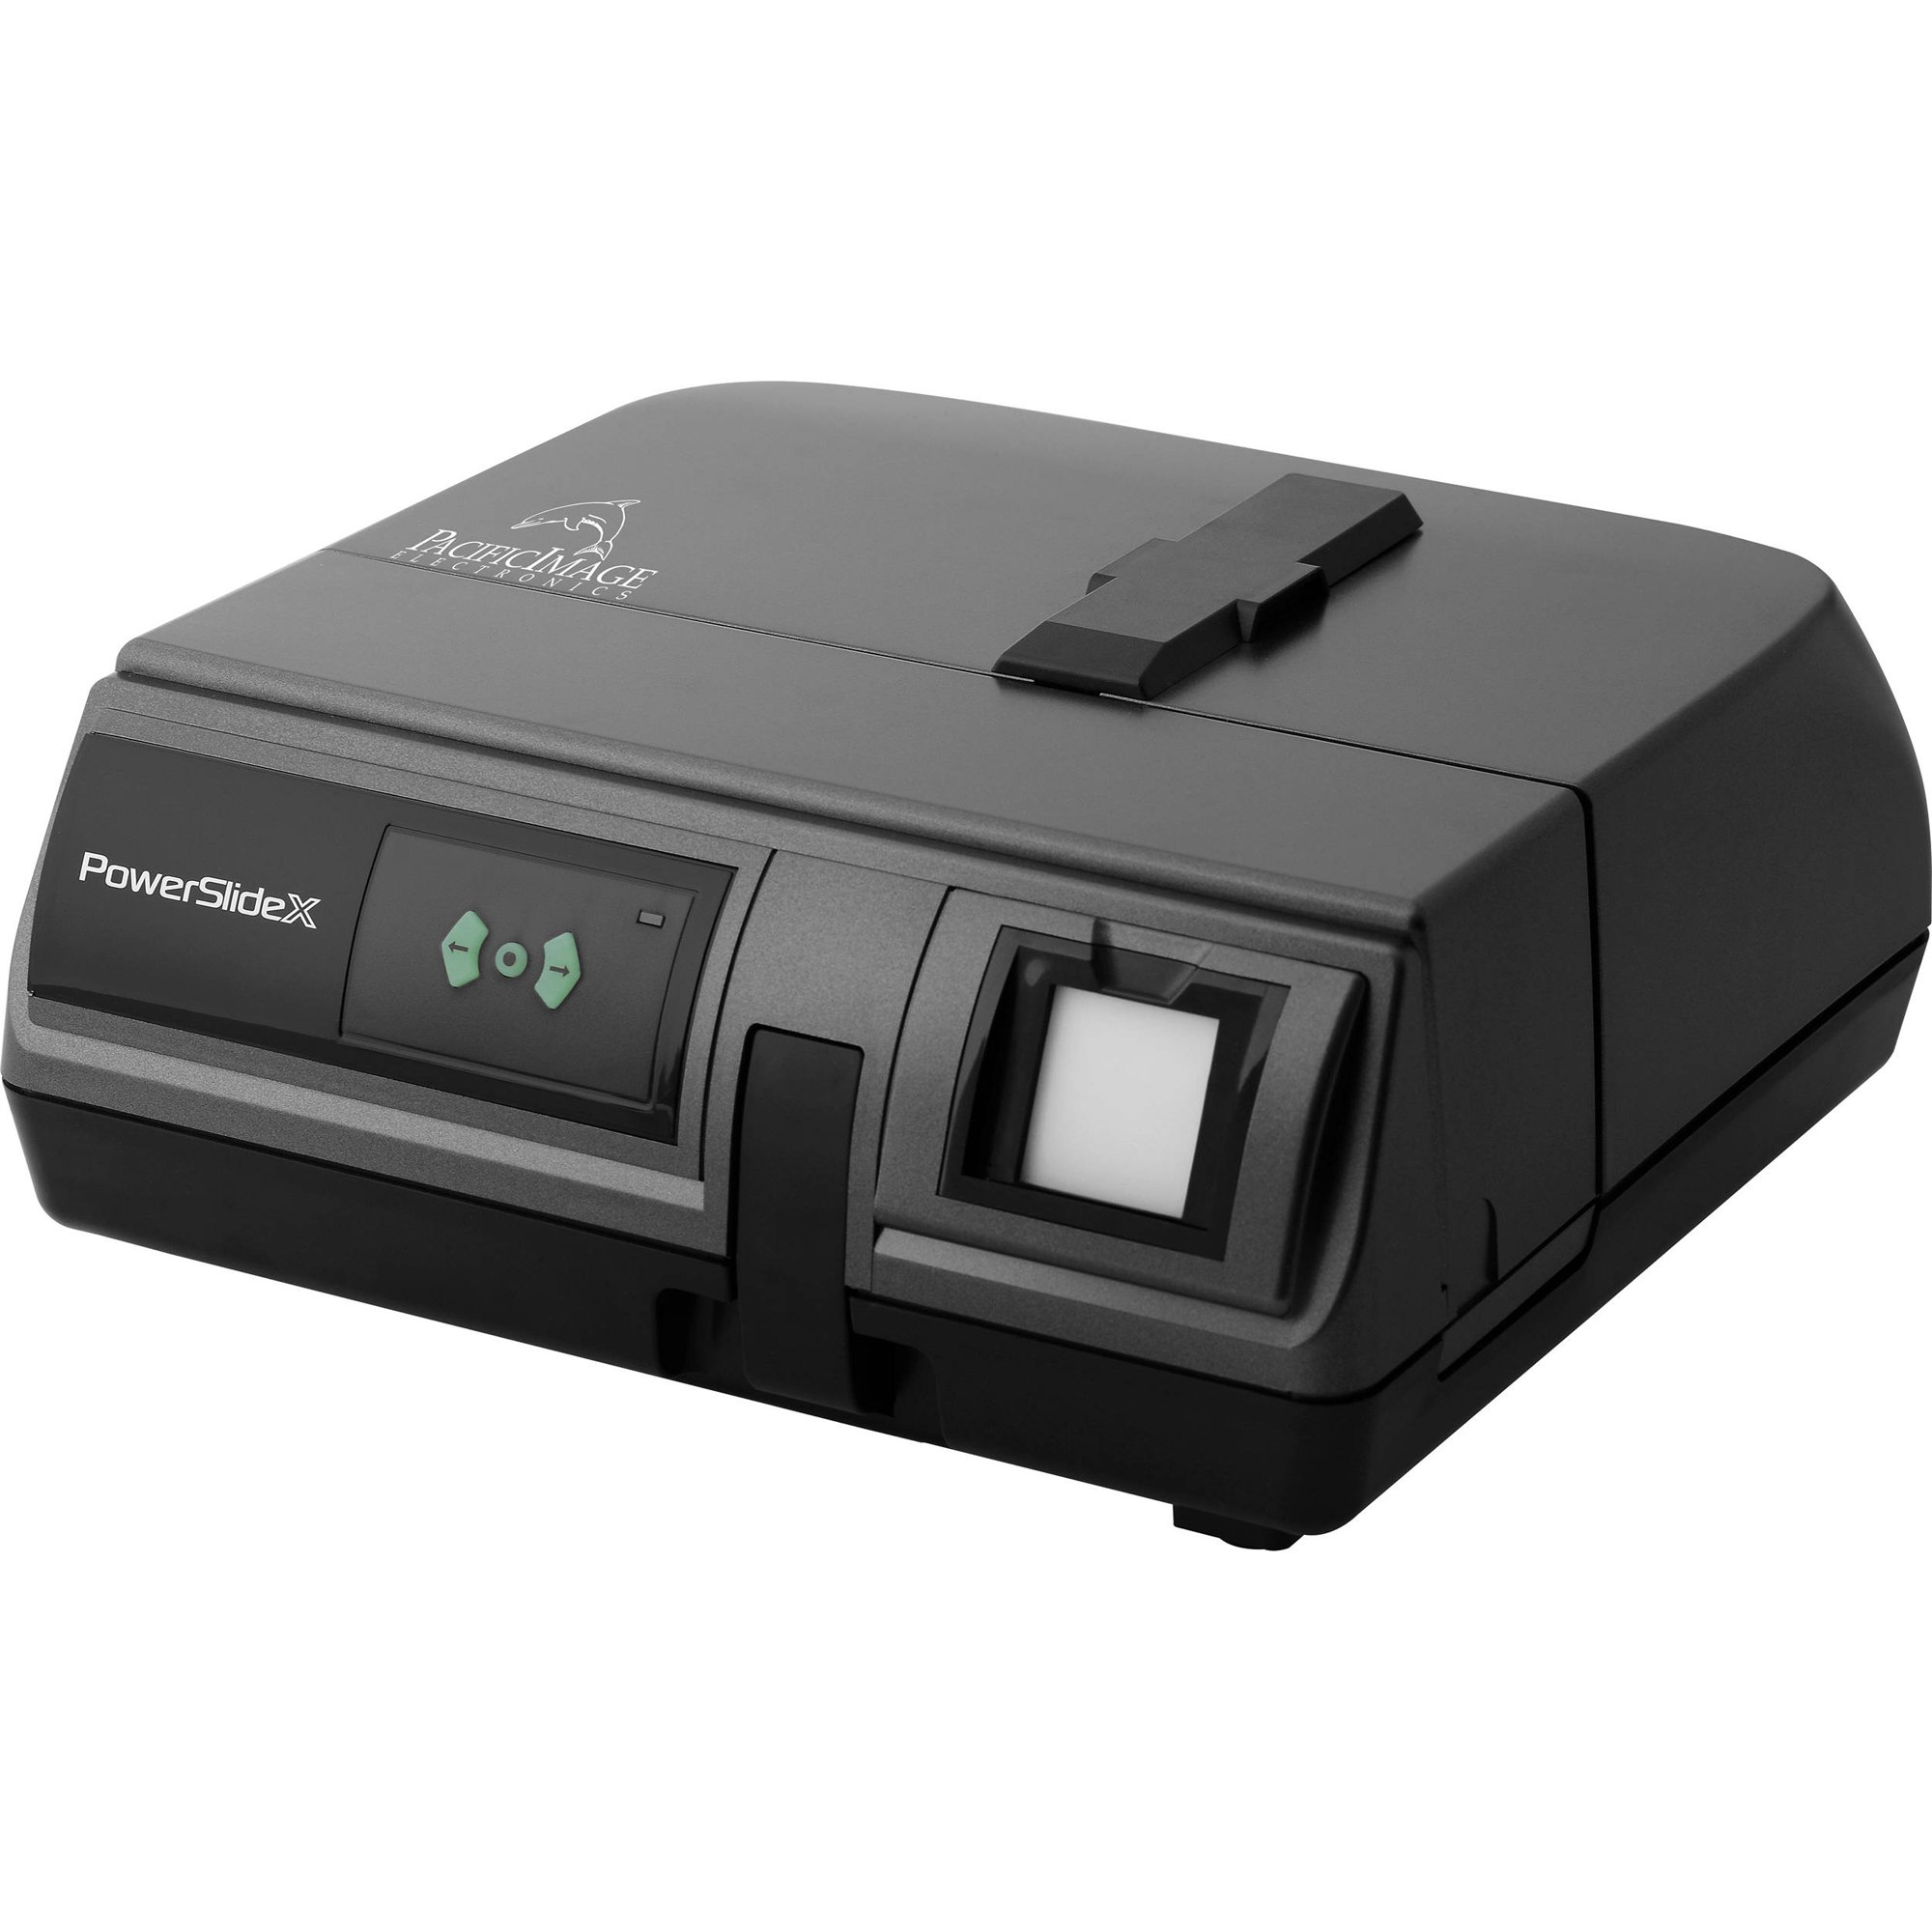 Pacific Image PowerSlide X Automated 35mm Slide Scanner by Pacific Image (Image #1)